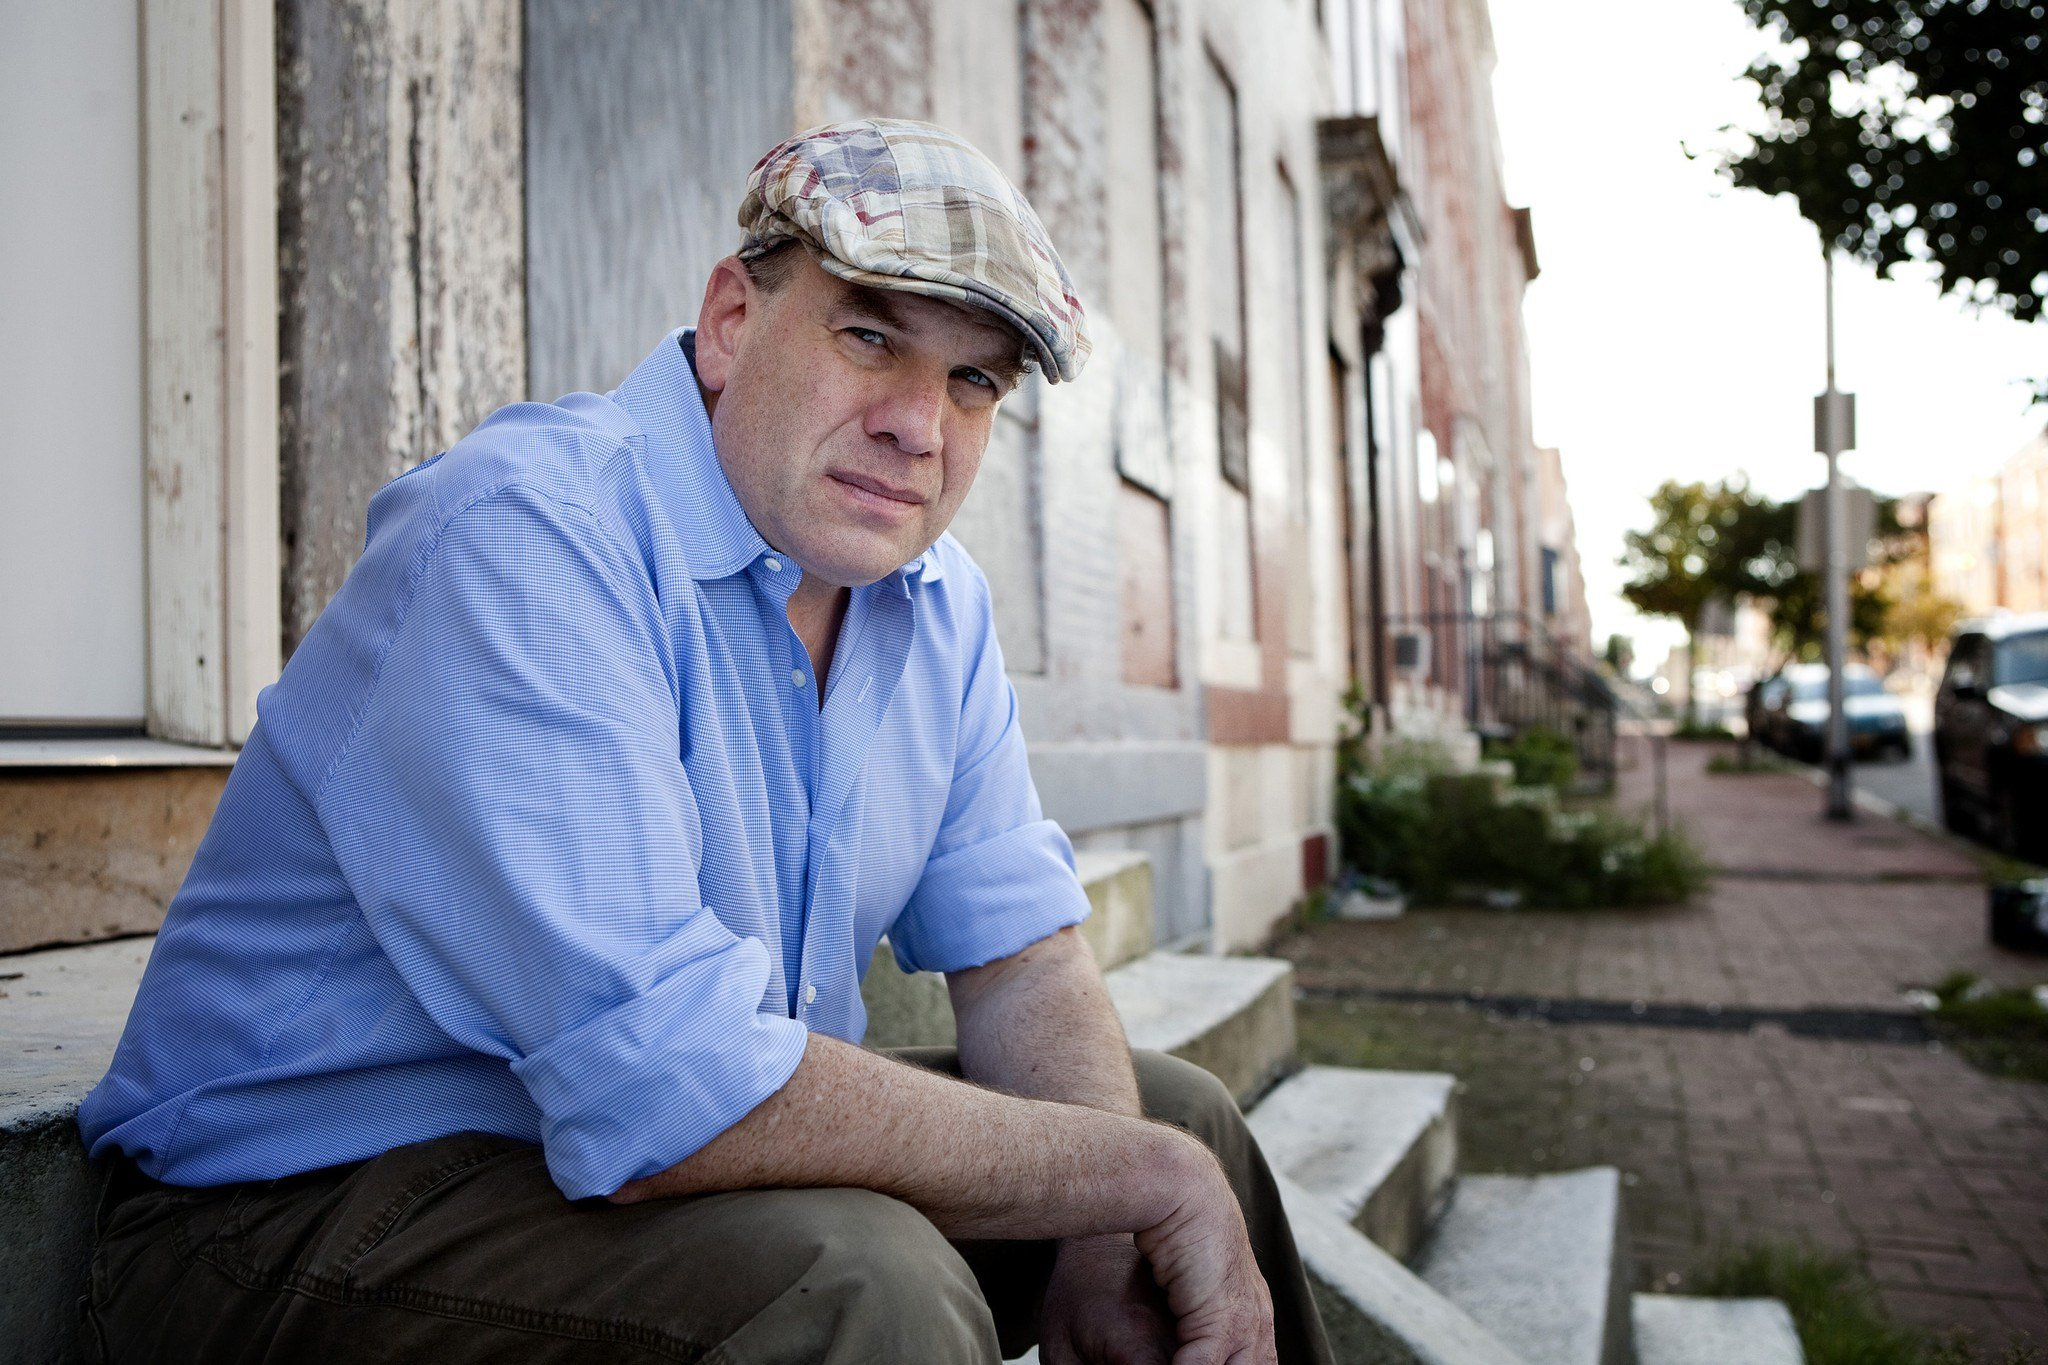 la et st baltimore riots david simon creator of the wire 20150428 12 Things You Didn't Know About 'The Wire'